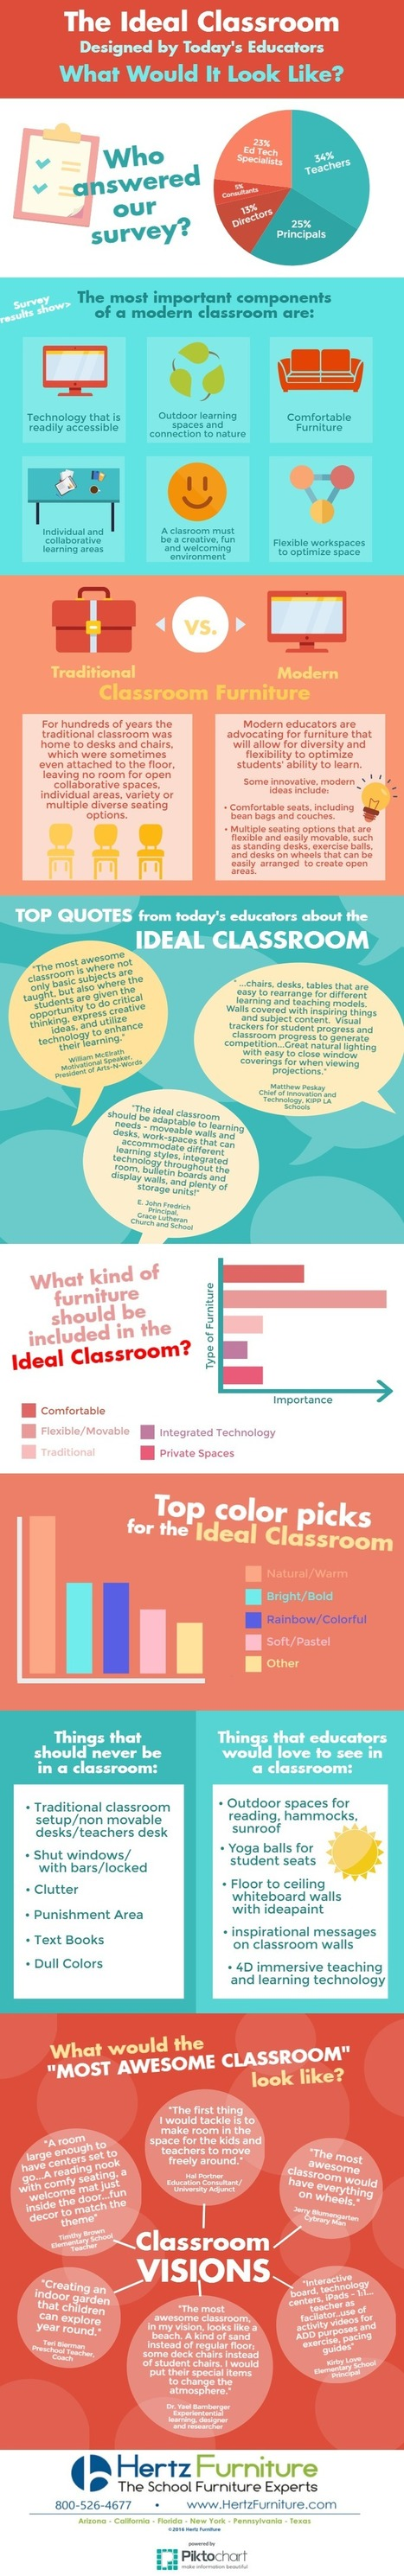 Designing The Ideal Classroom Infographic - e-Learning Infographics | Technologies pour la formation | Scoop.it